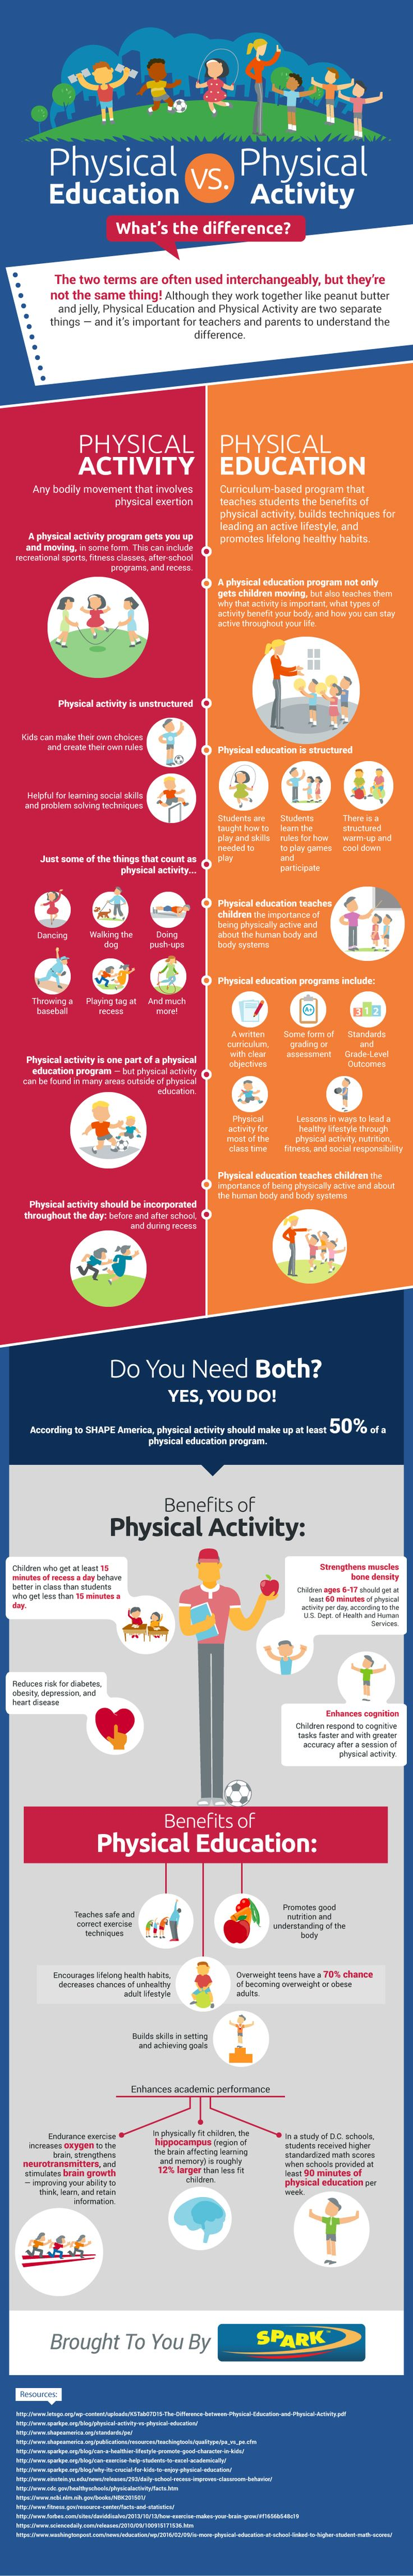 The differences between physical activity and physical education.